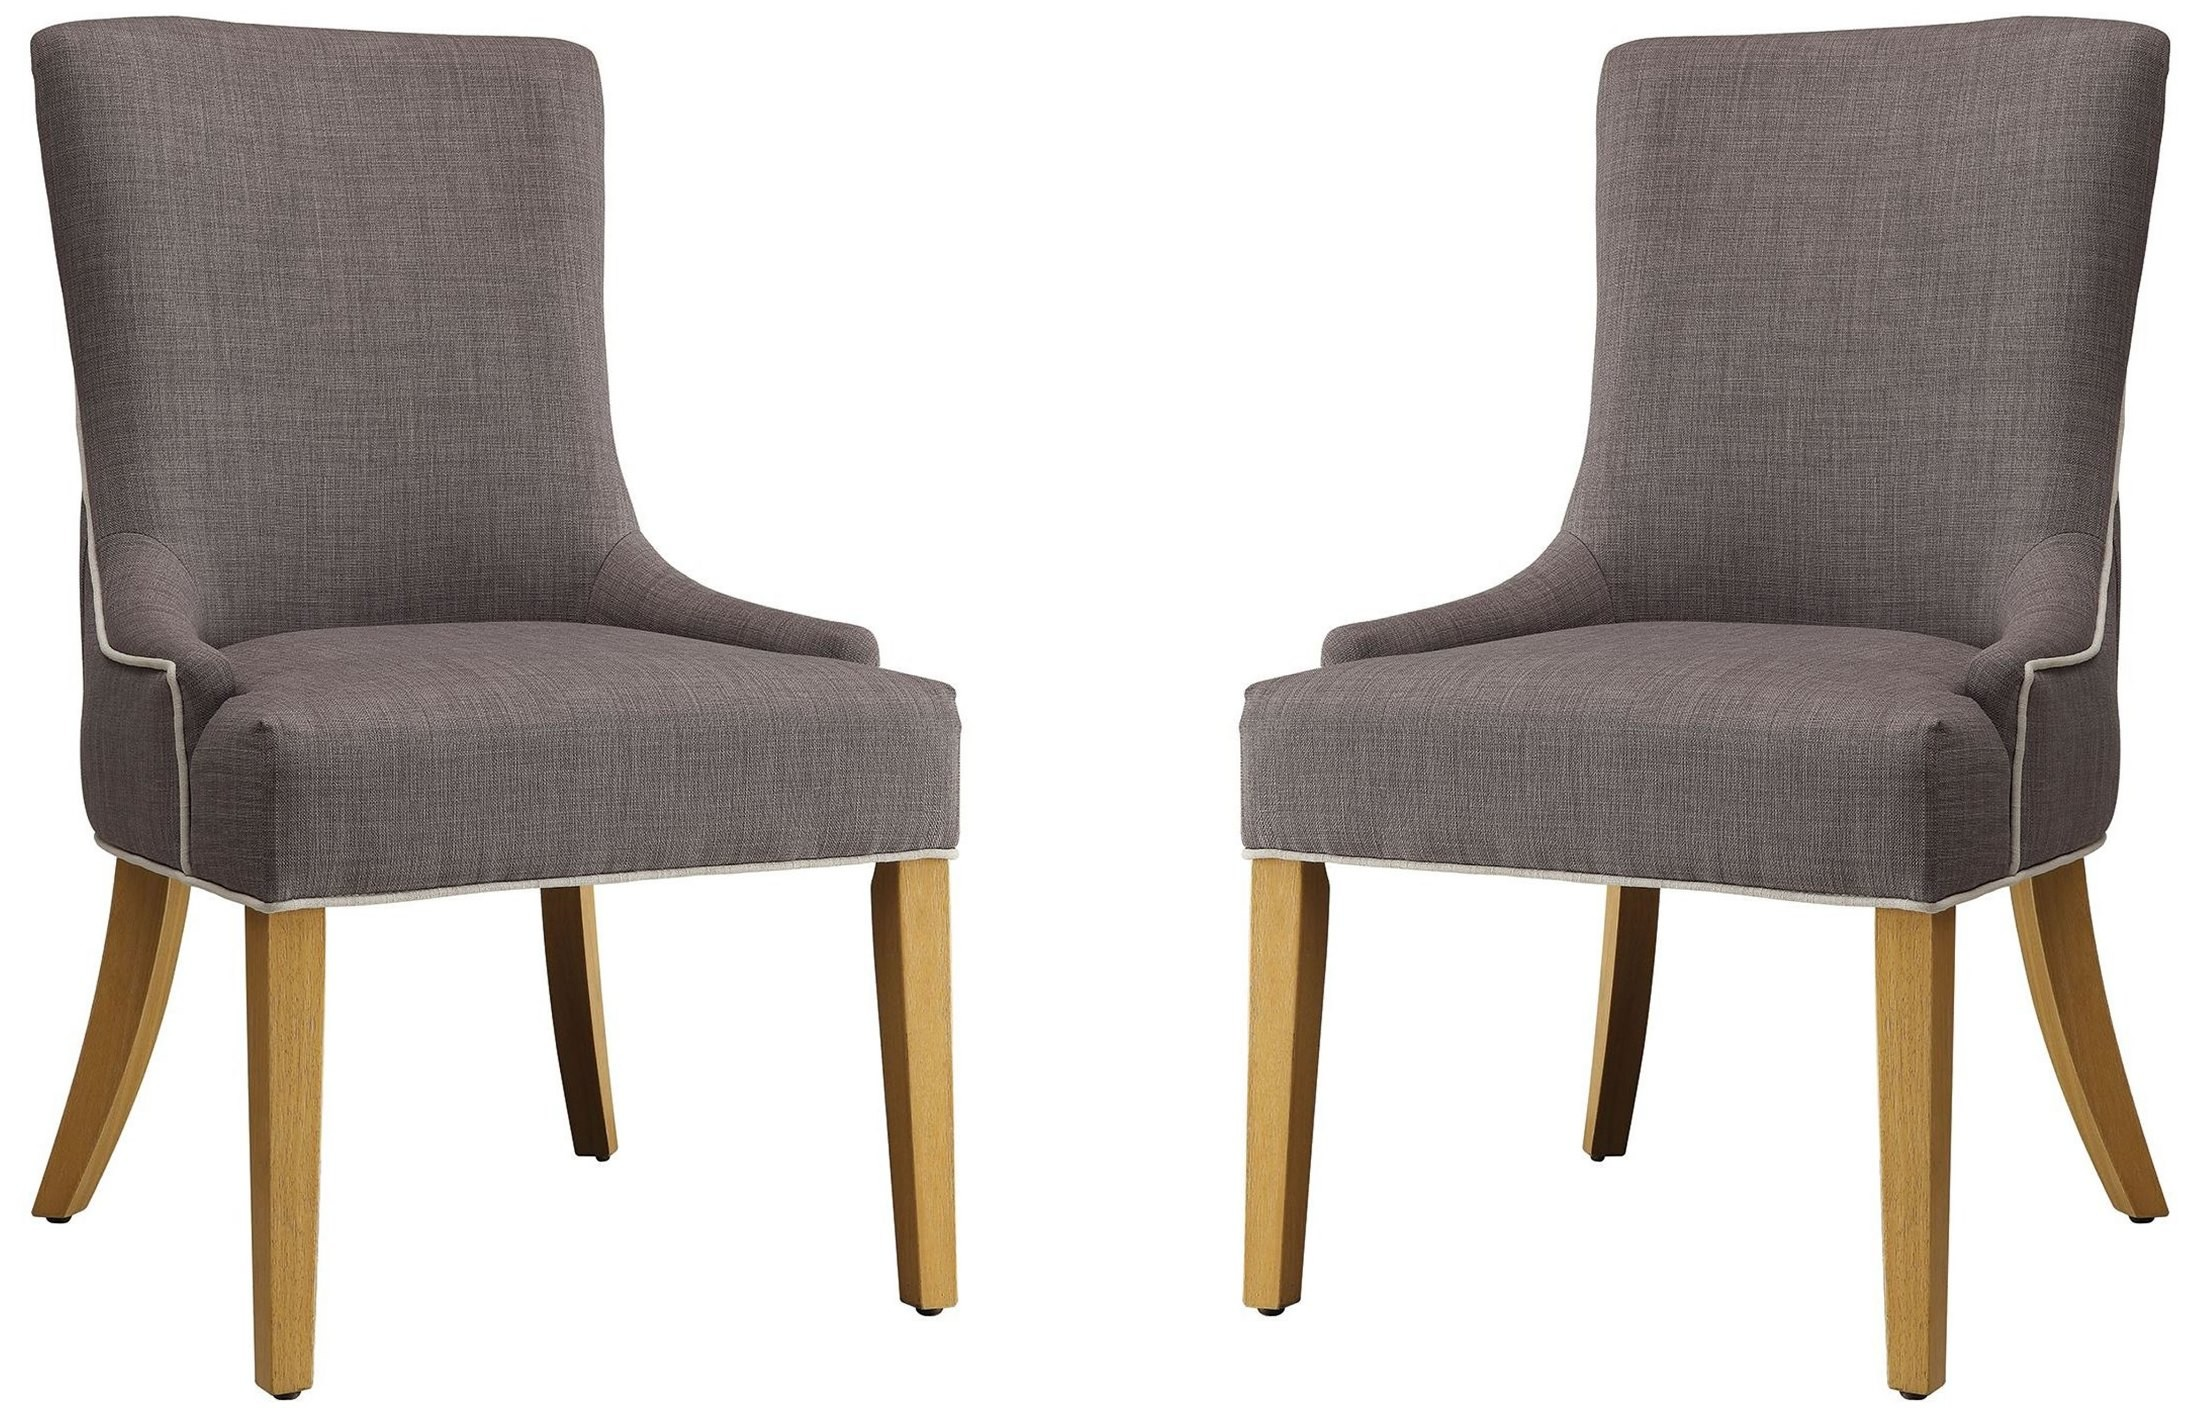 Grey Upholstered Chair Grey And White Upholstered Side Chair Set Of 2 104566